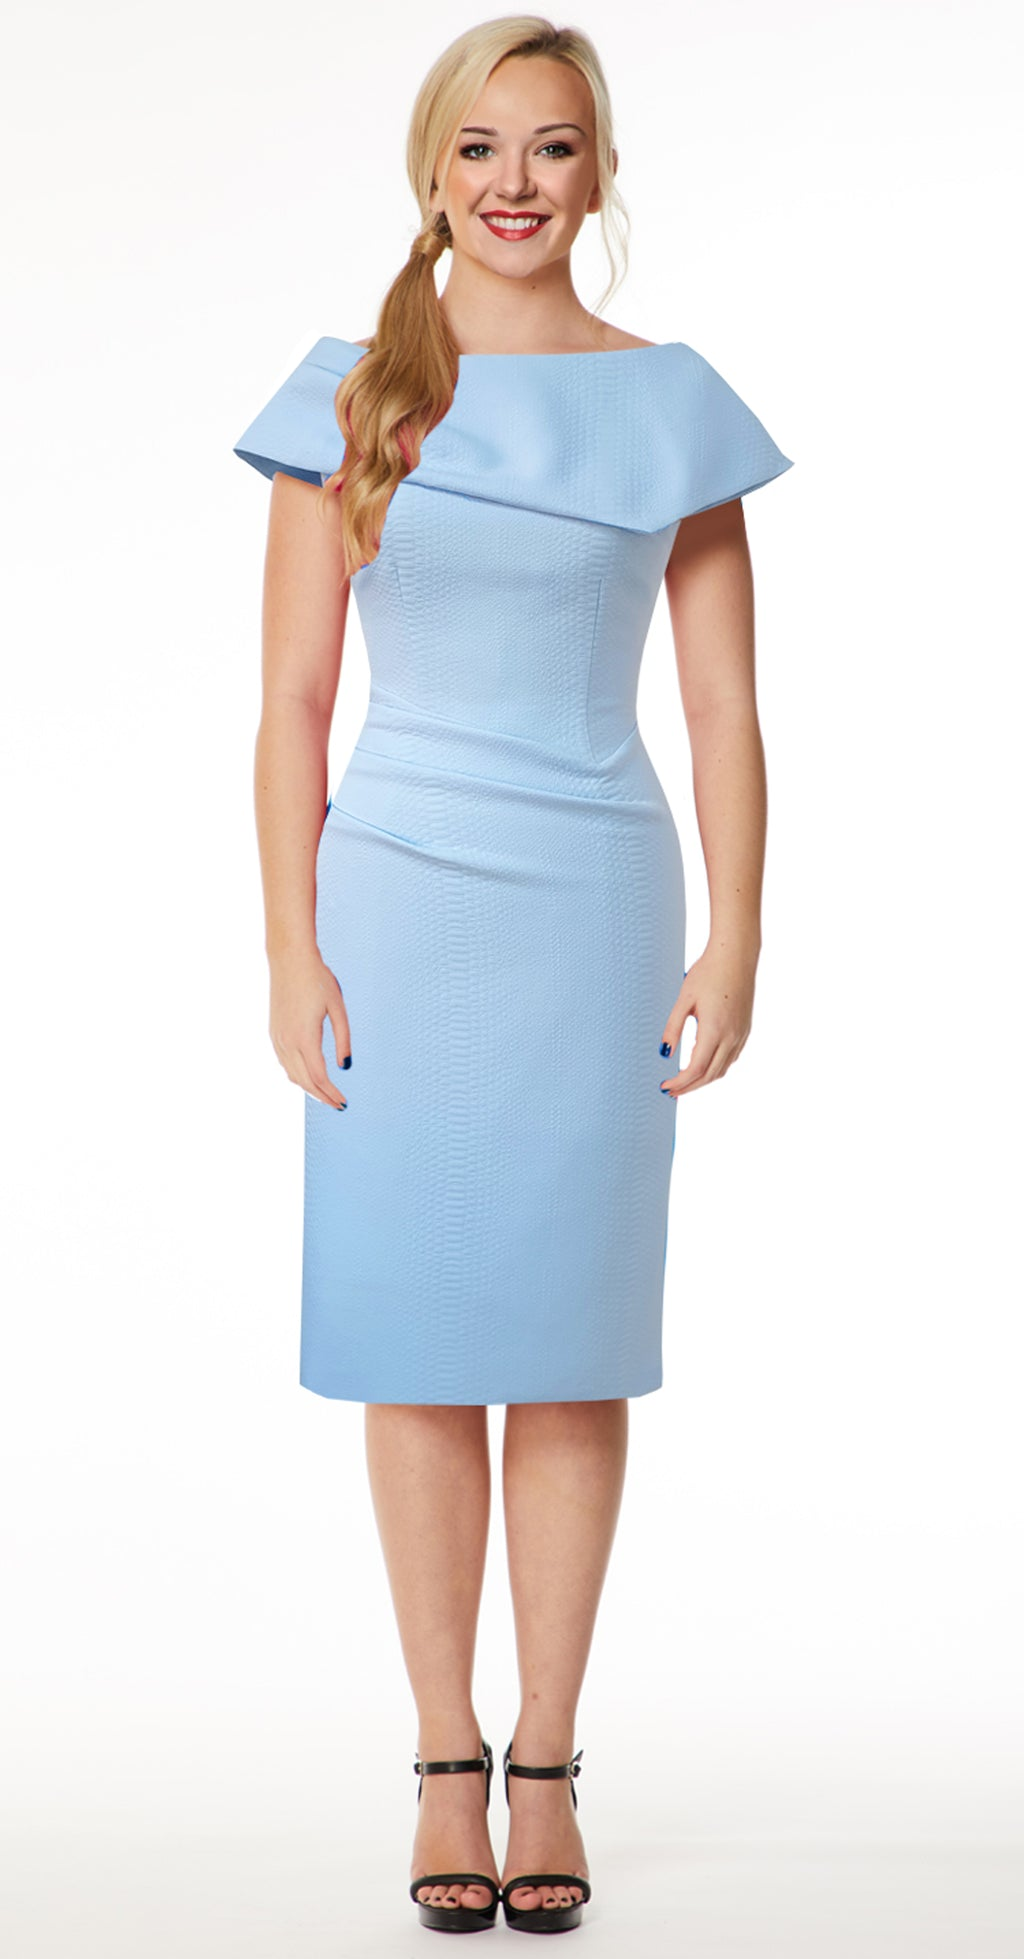 Olympia Dress DRC233 Pale Blue Snake Jacquard